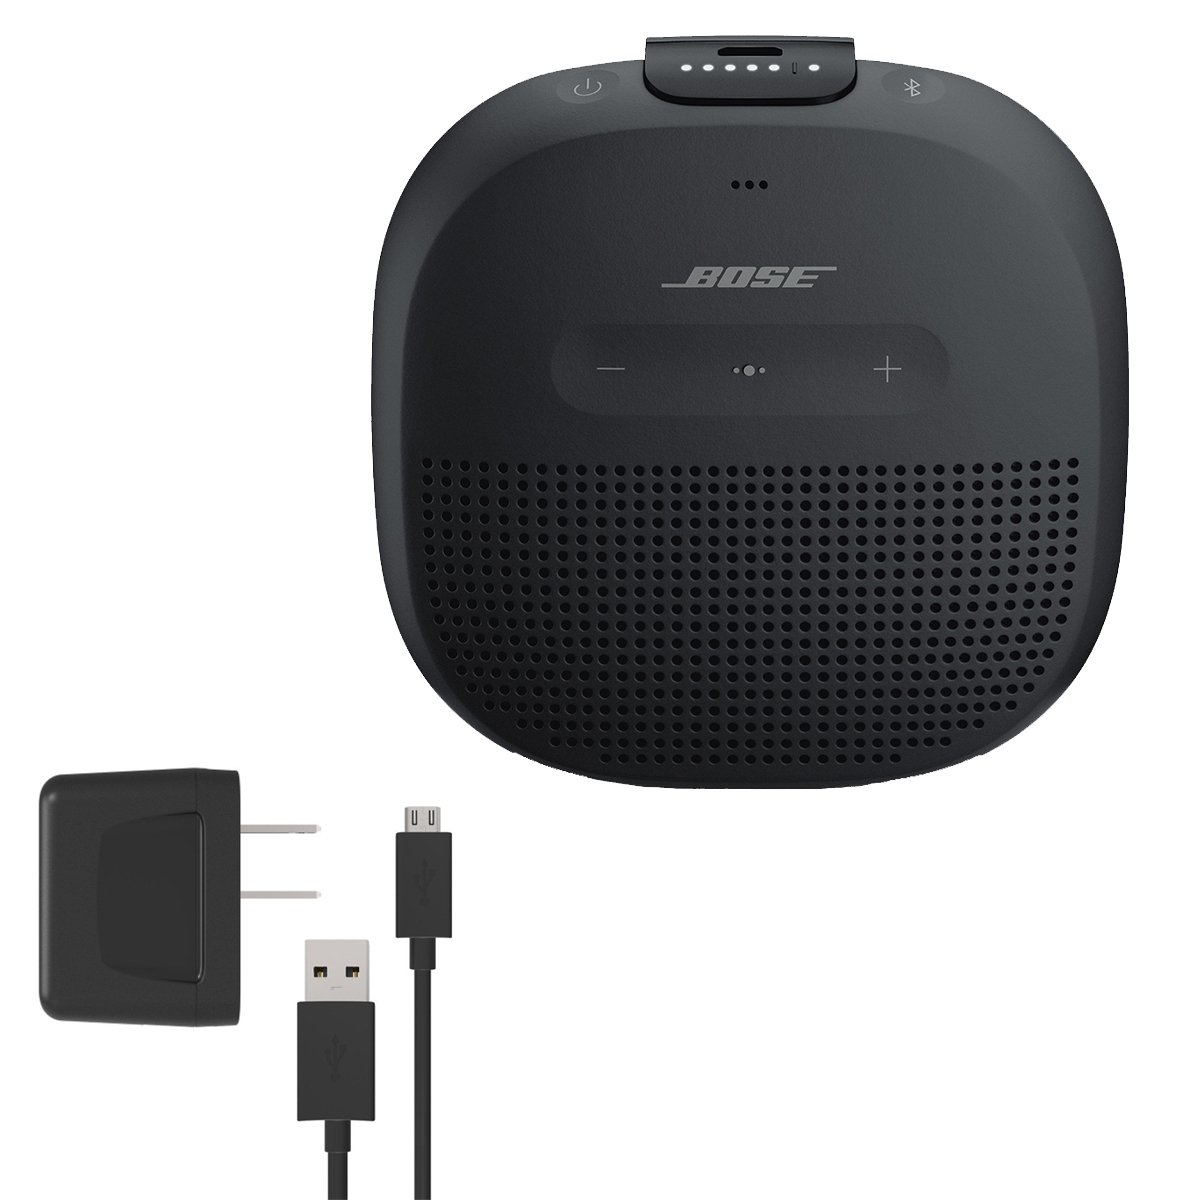 Bose SoundLink Micro Waterproof Bluetooth Speaker, Black, with Bose Wall Charger